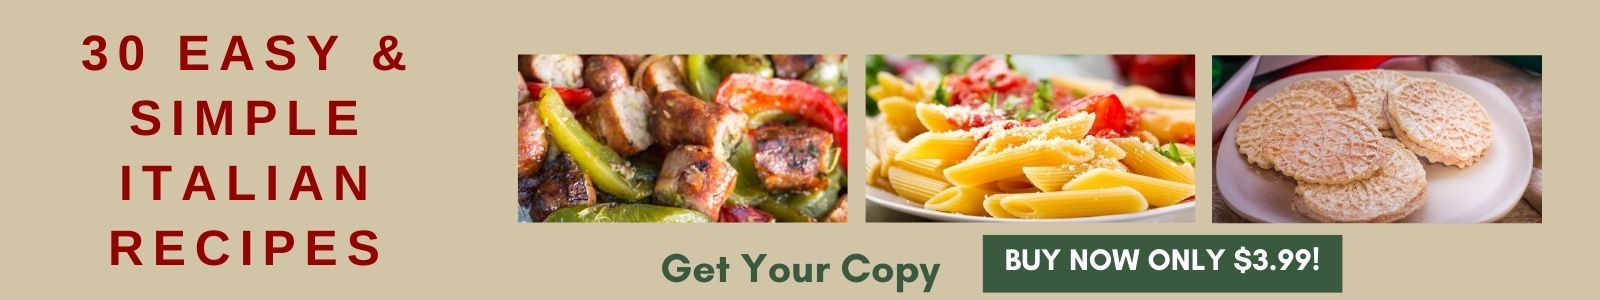 30 easy & simple italian recipes ecookbook